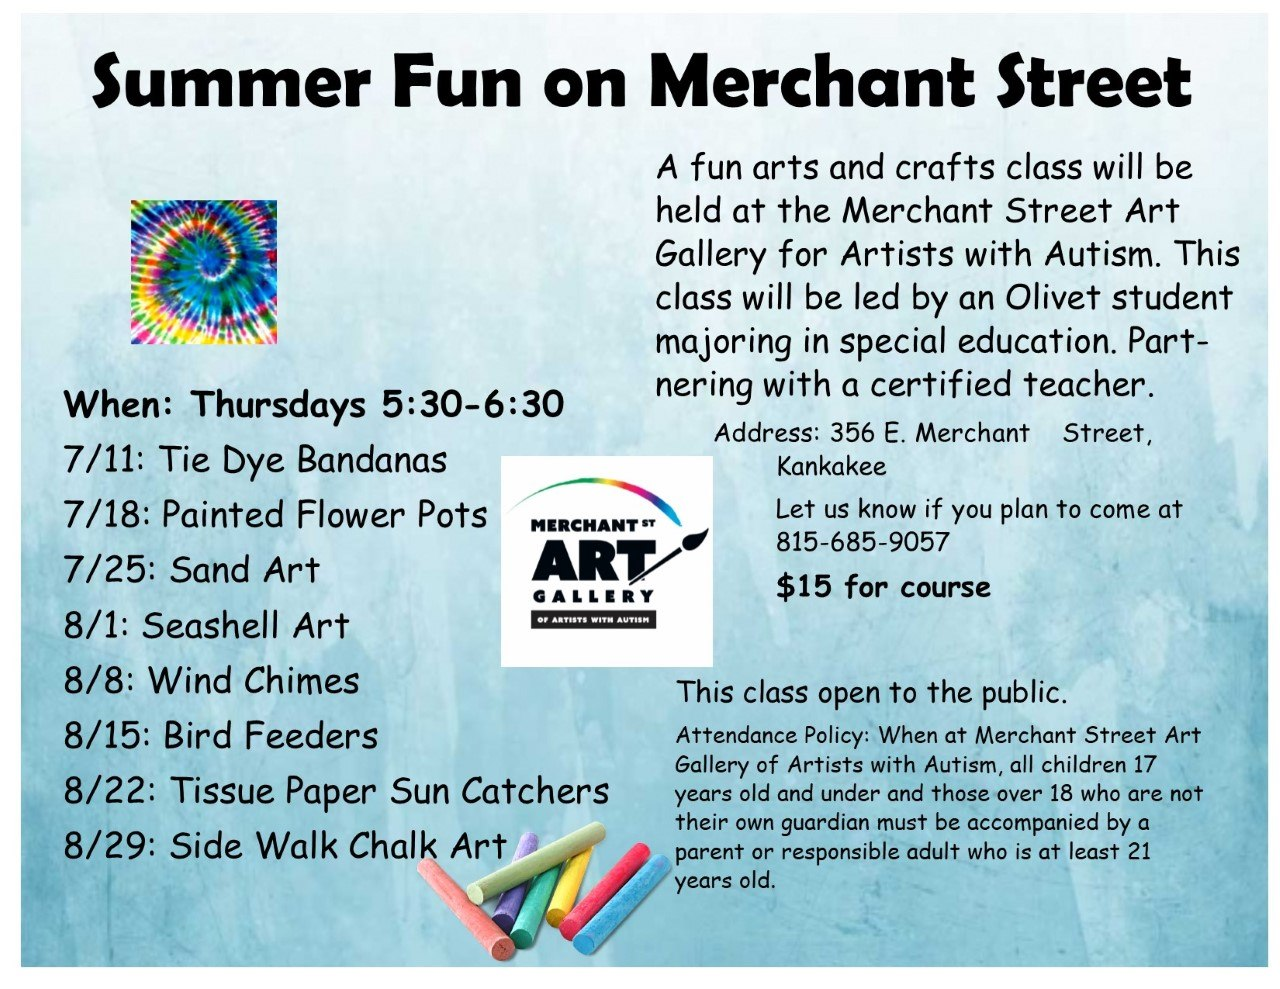 Summer Fun on Merchant Street